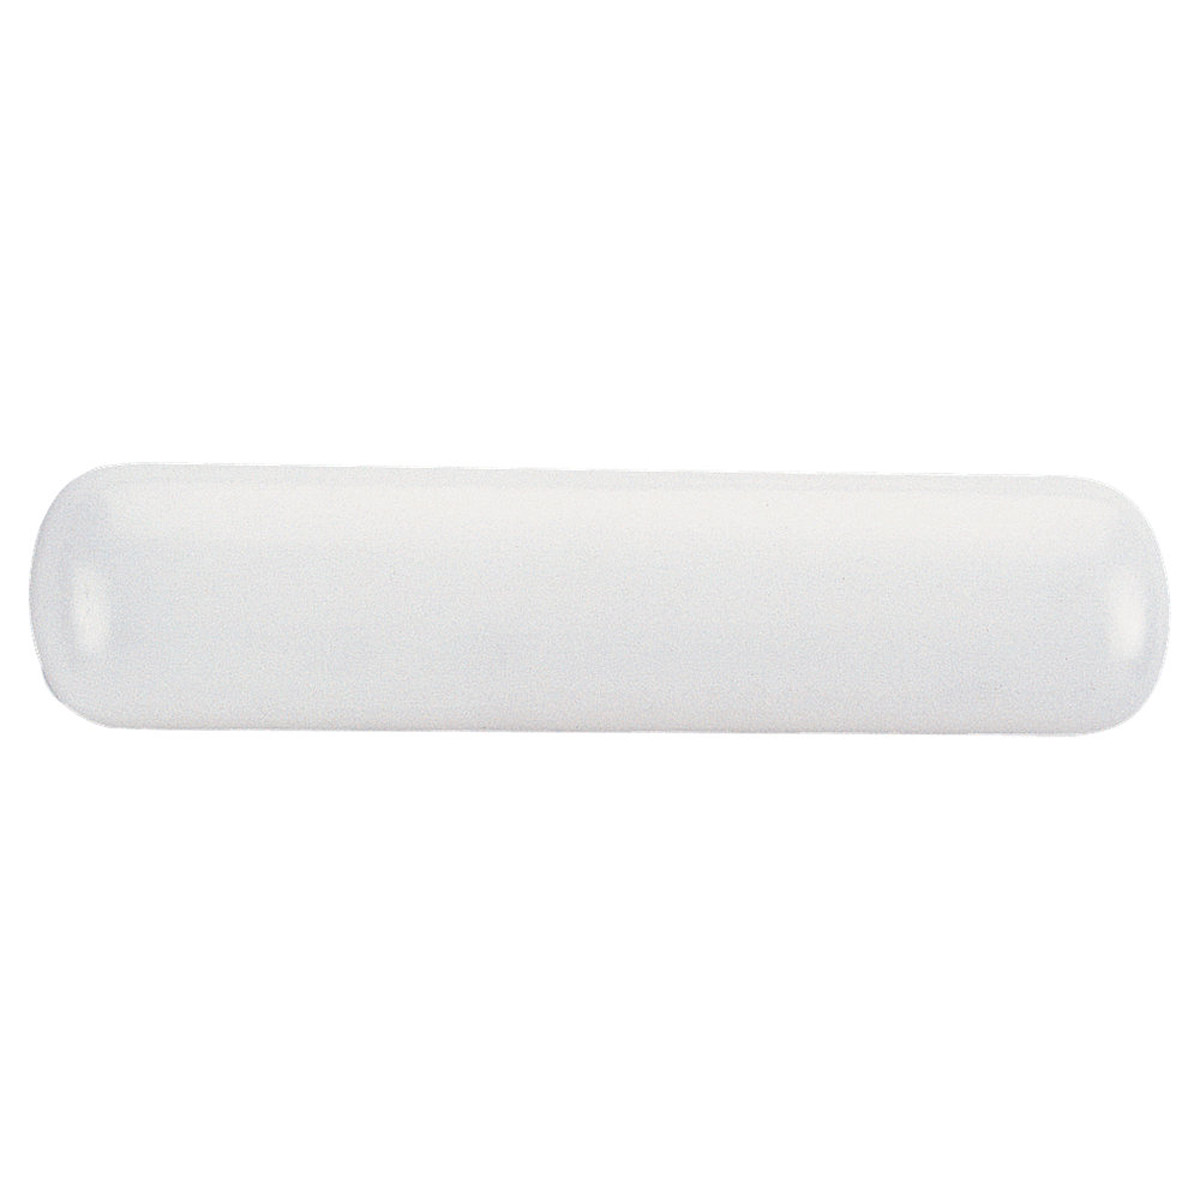 Sea Gull 4910LE-68 Pillow Lens Fluorescent 2 Light 39 inch White Plastic Wall Sconce Wall Light in 38.75 in. photo